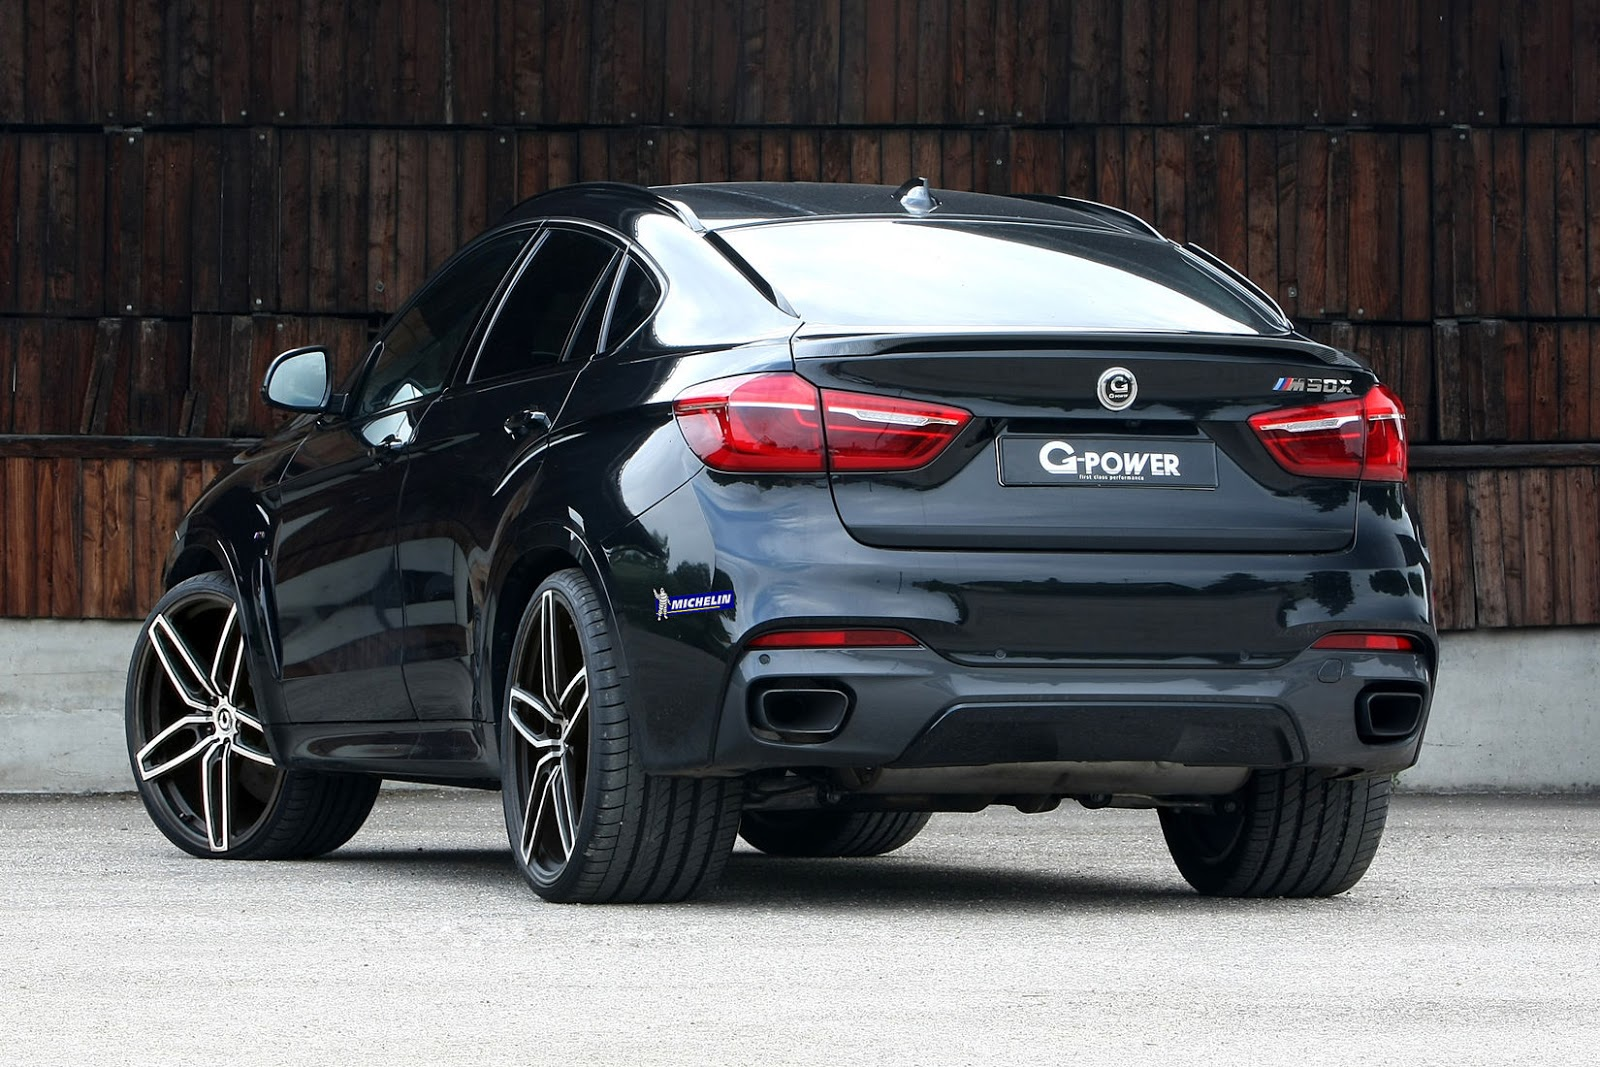 G Power Finds Bmw X6 M50d S Sweet Spot With 455 Diesel Fueled Horses Carscoops